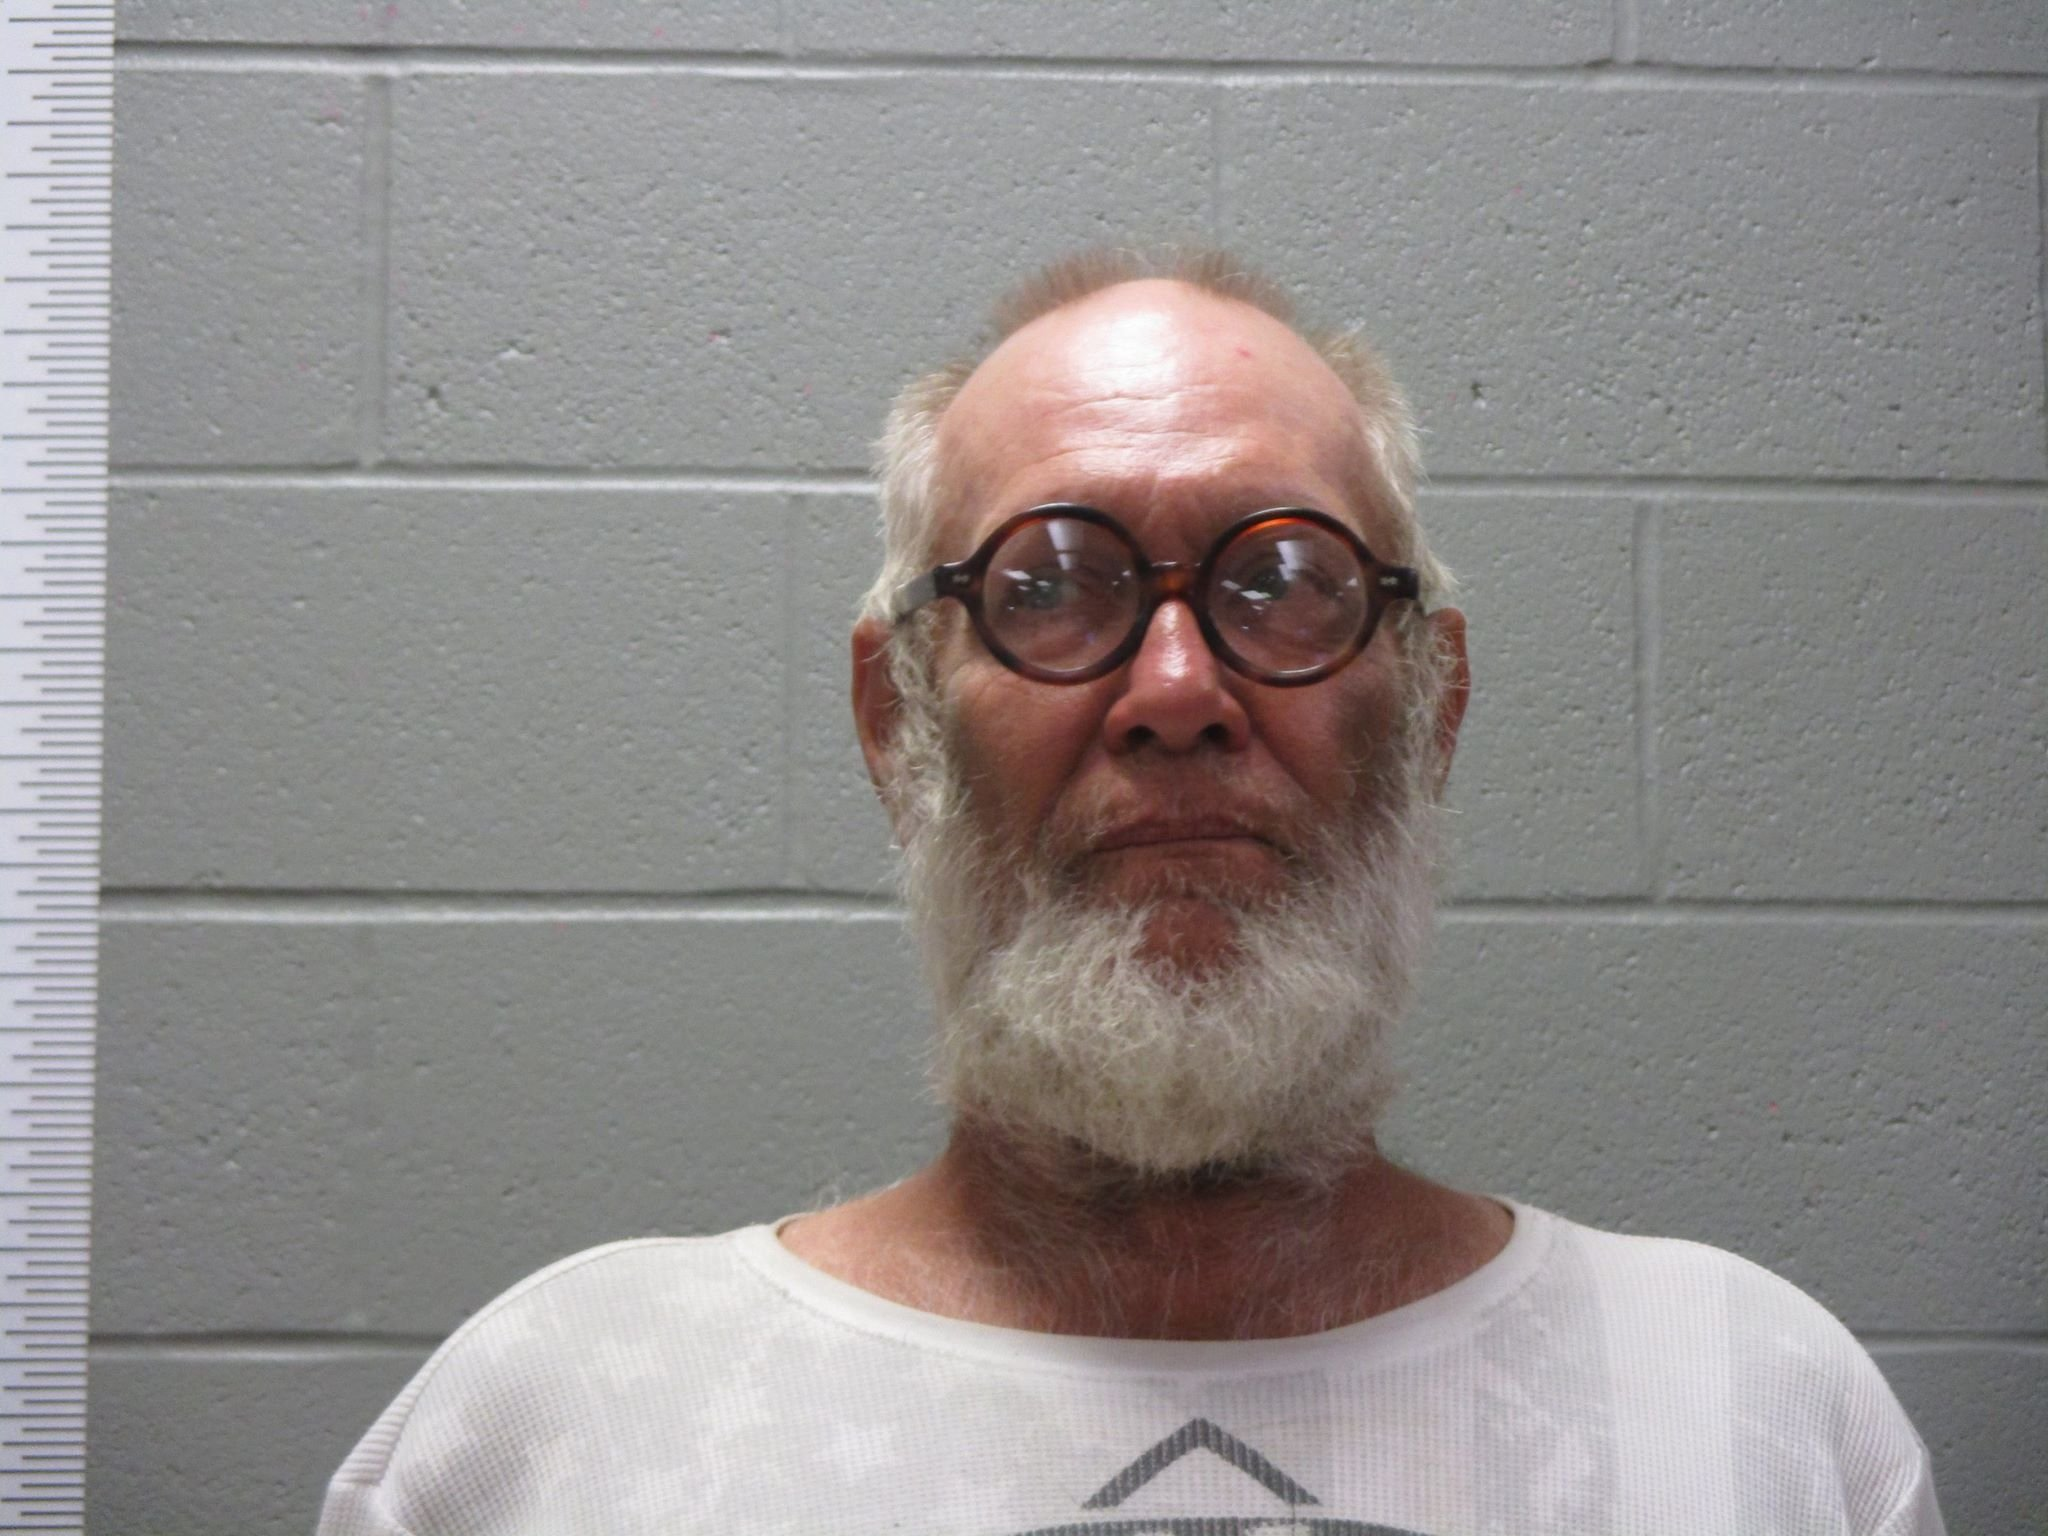 Guy Gregory has been charged with second-degree assault. (Bates County Jail)